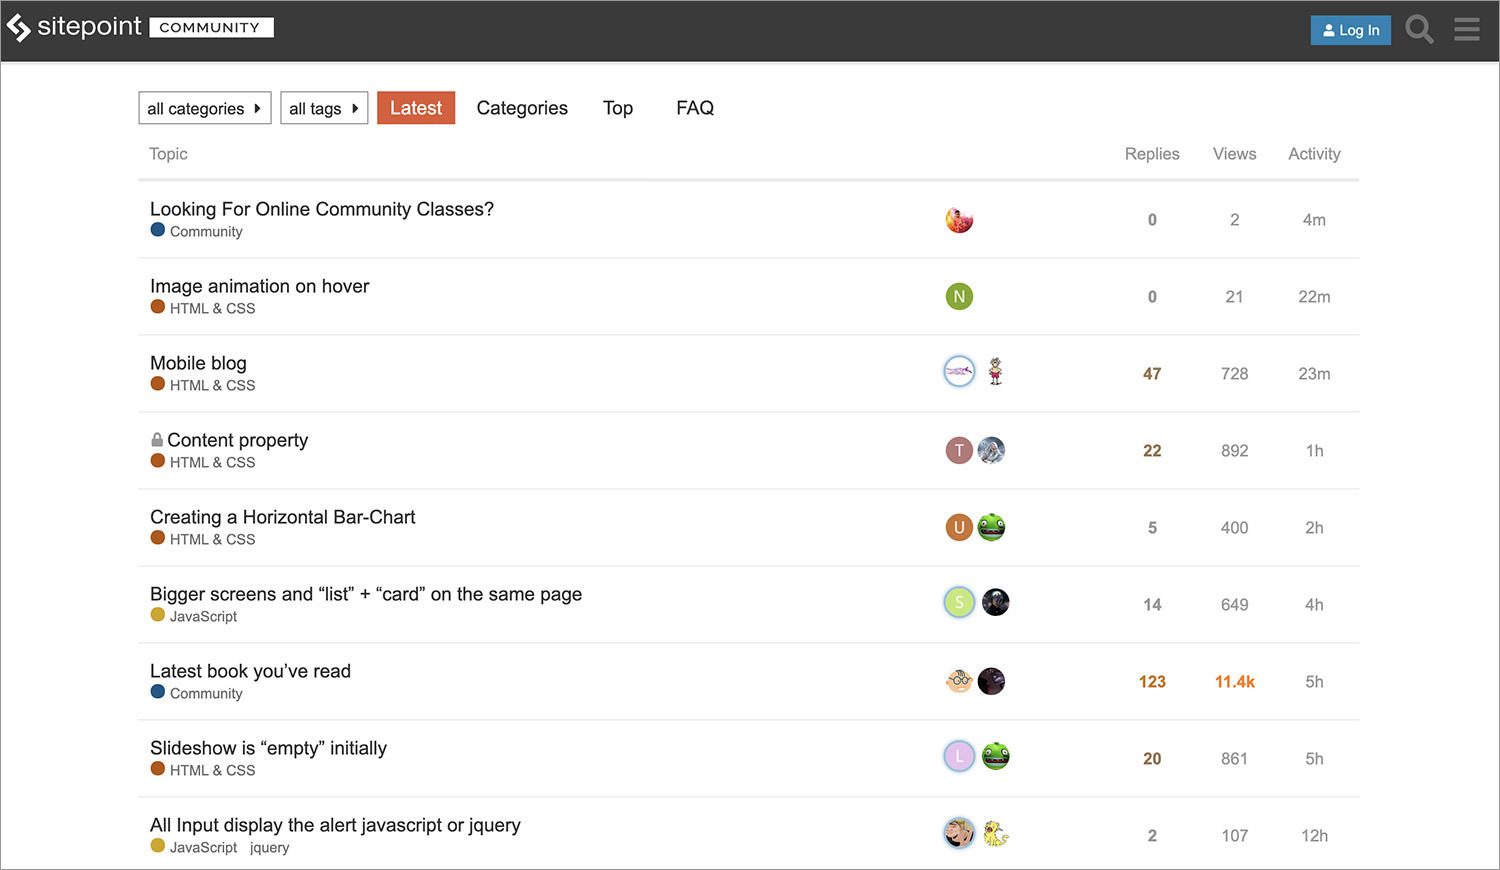 The SitePoint Forums